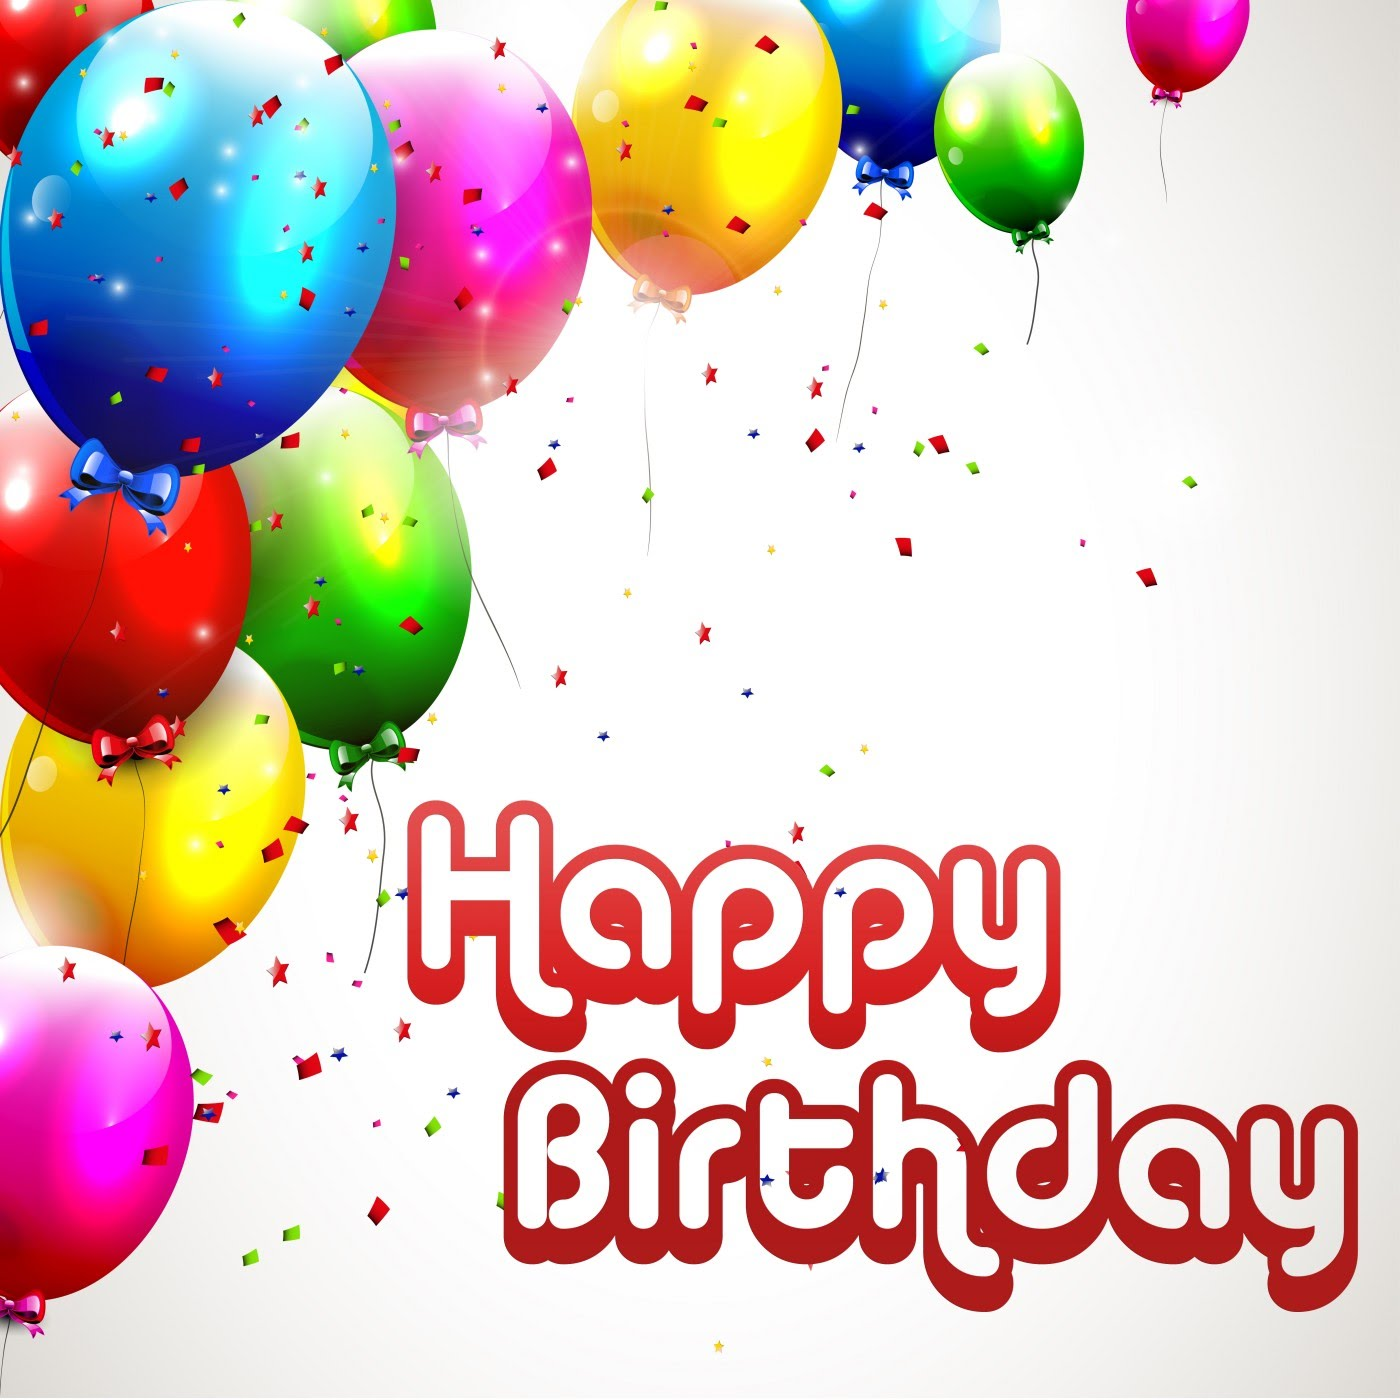 wish you happy birthday images ; maxresdefault-1